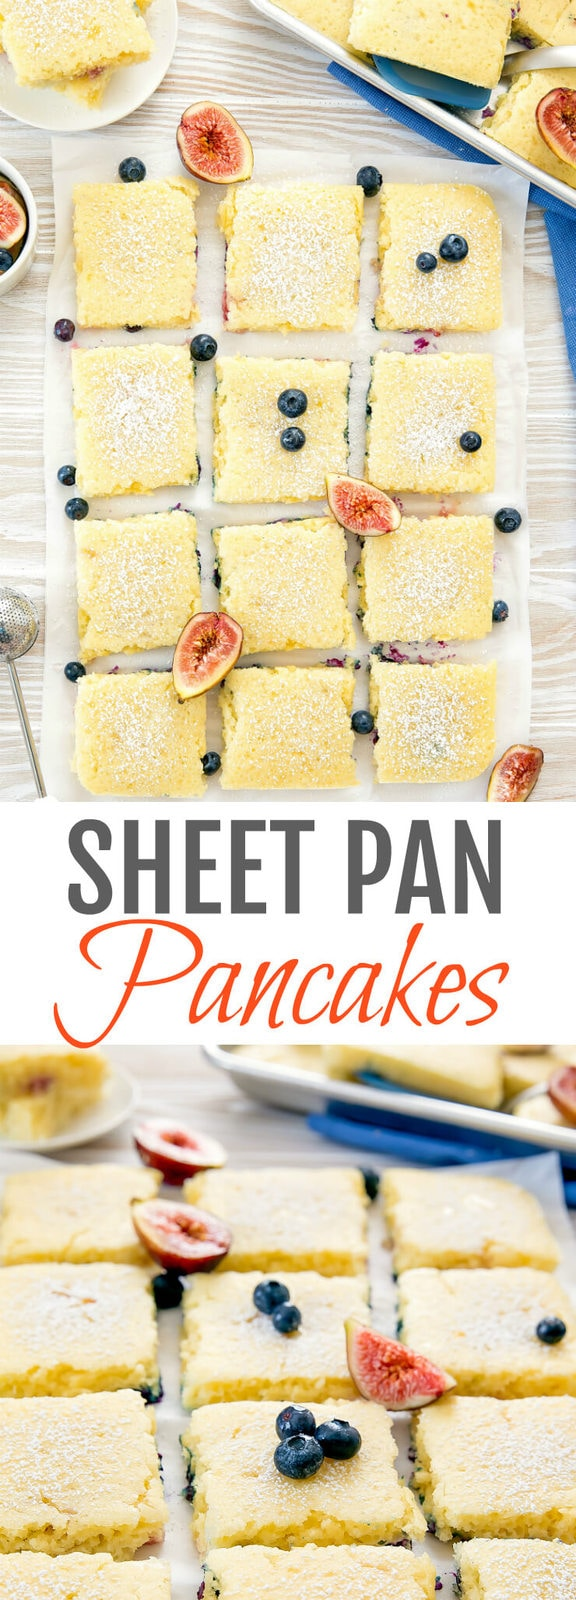 Sheet Pan Pancakes. Make baked fluffy pancakes for a large group in less than 30 minutes!